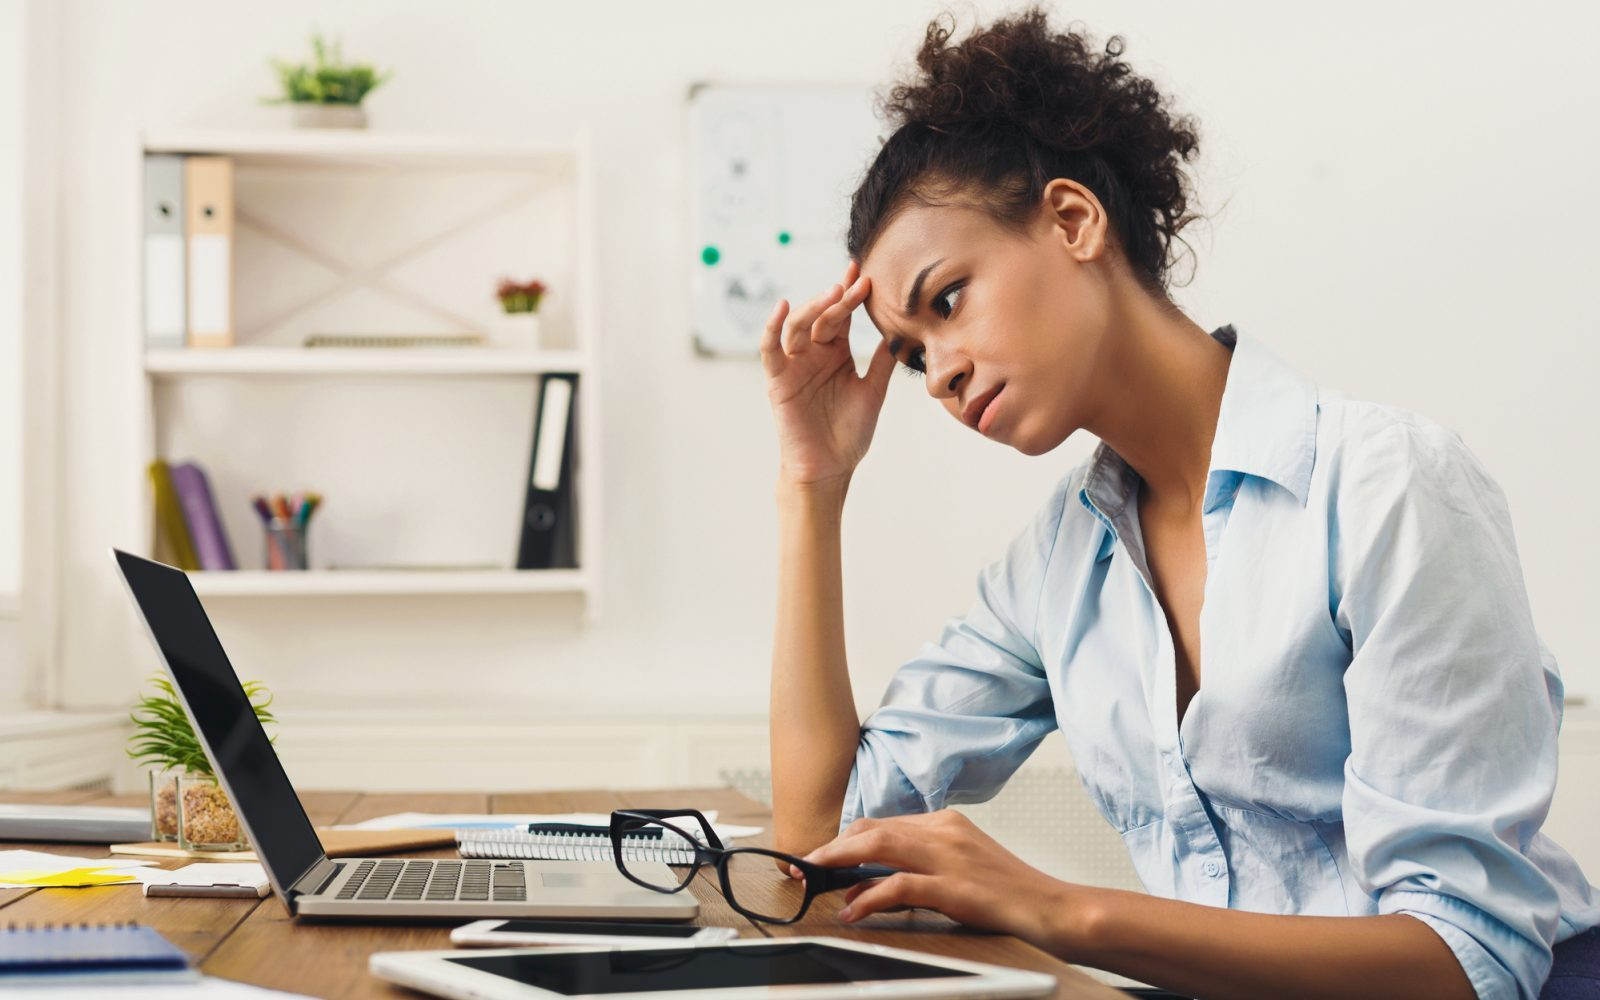 How To Cut Through Overwhelm & Be Effective With Less Effort